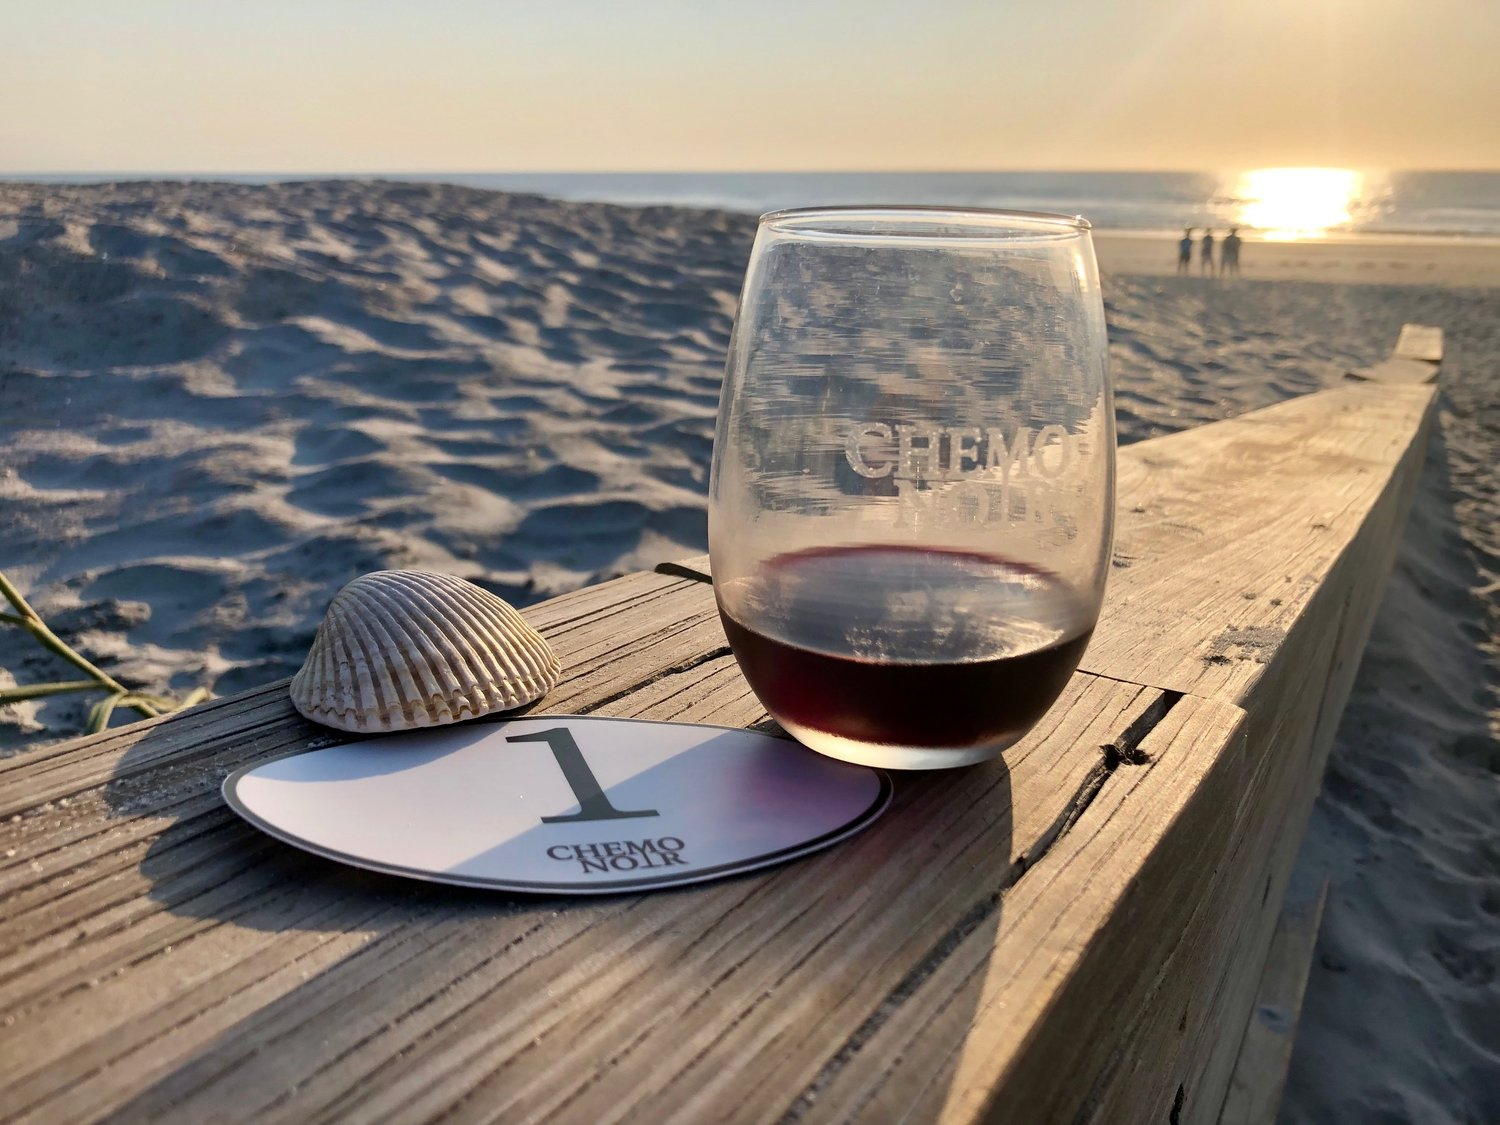 Chemo Noir will hold its 1-mile race and wine tasting event at Casa Marina Restaurant and Hotel in Jacksonville Beach on June 15.